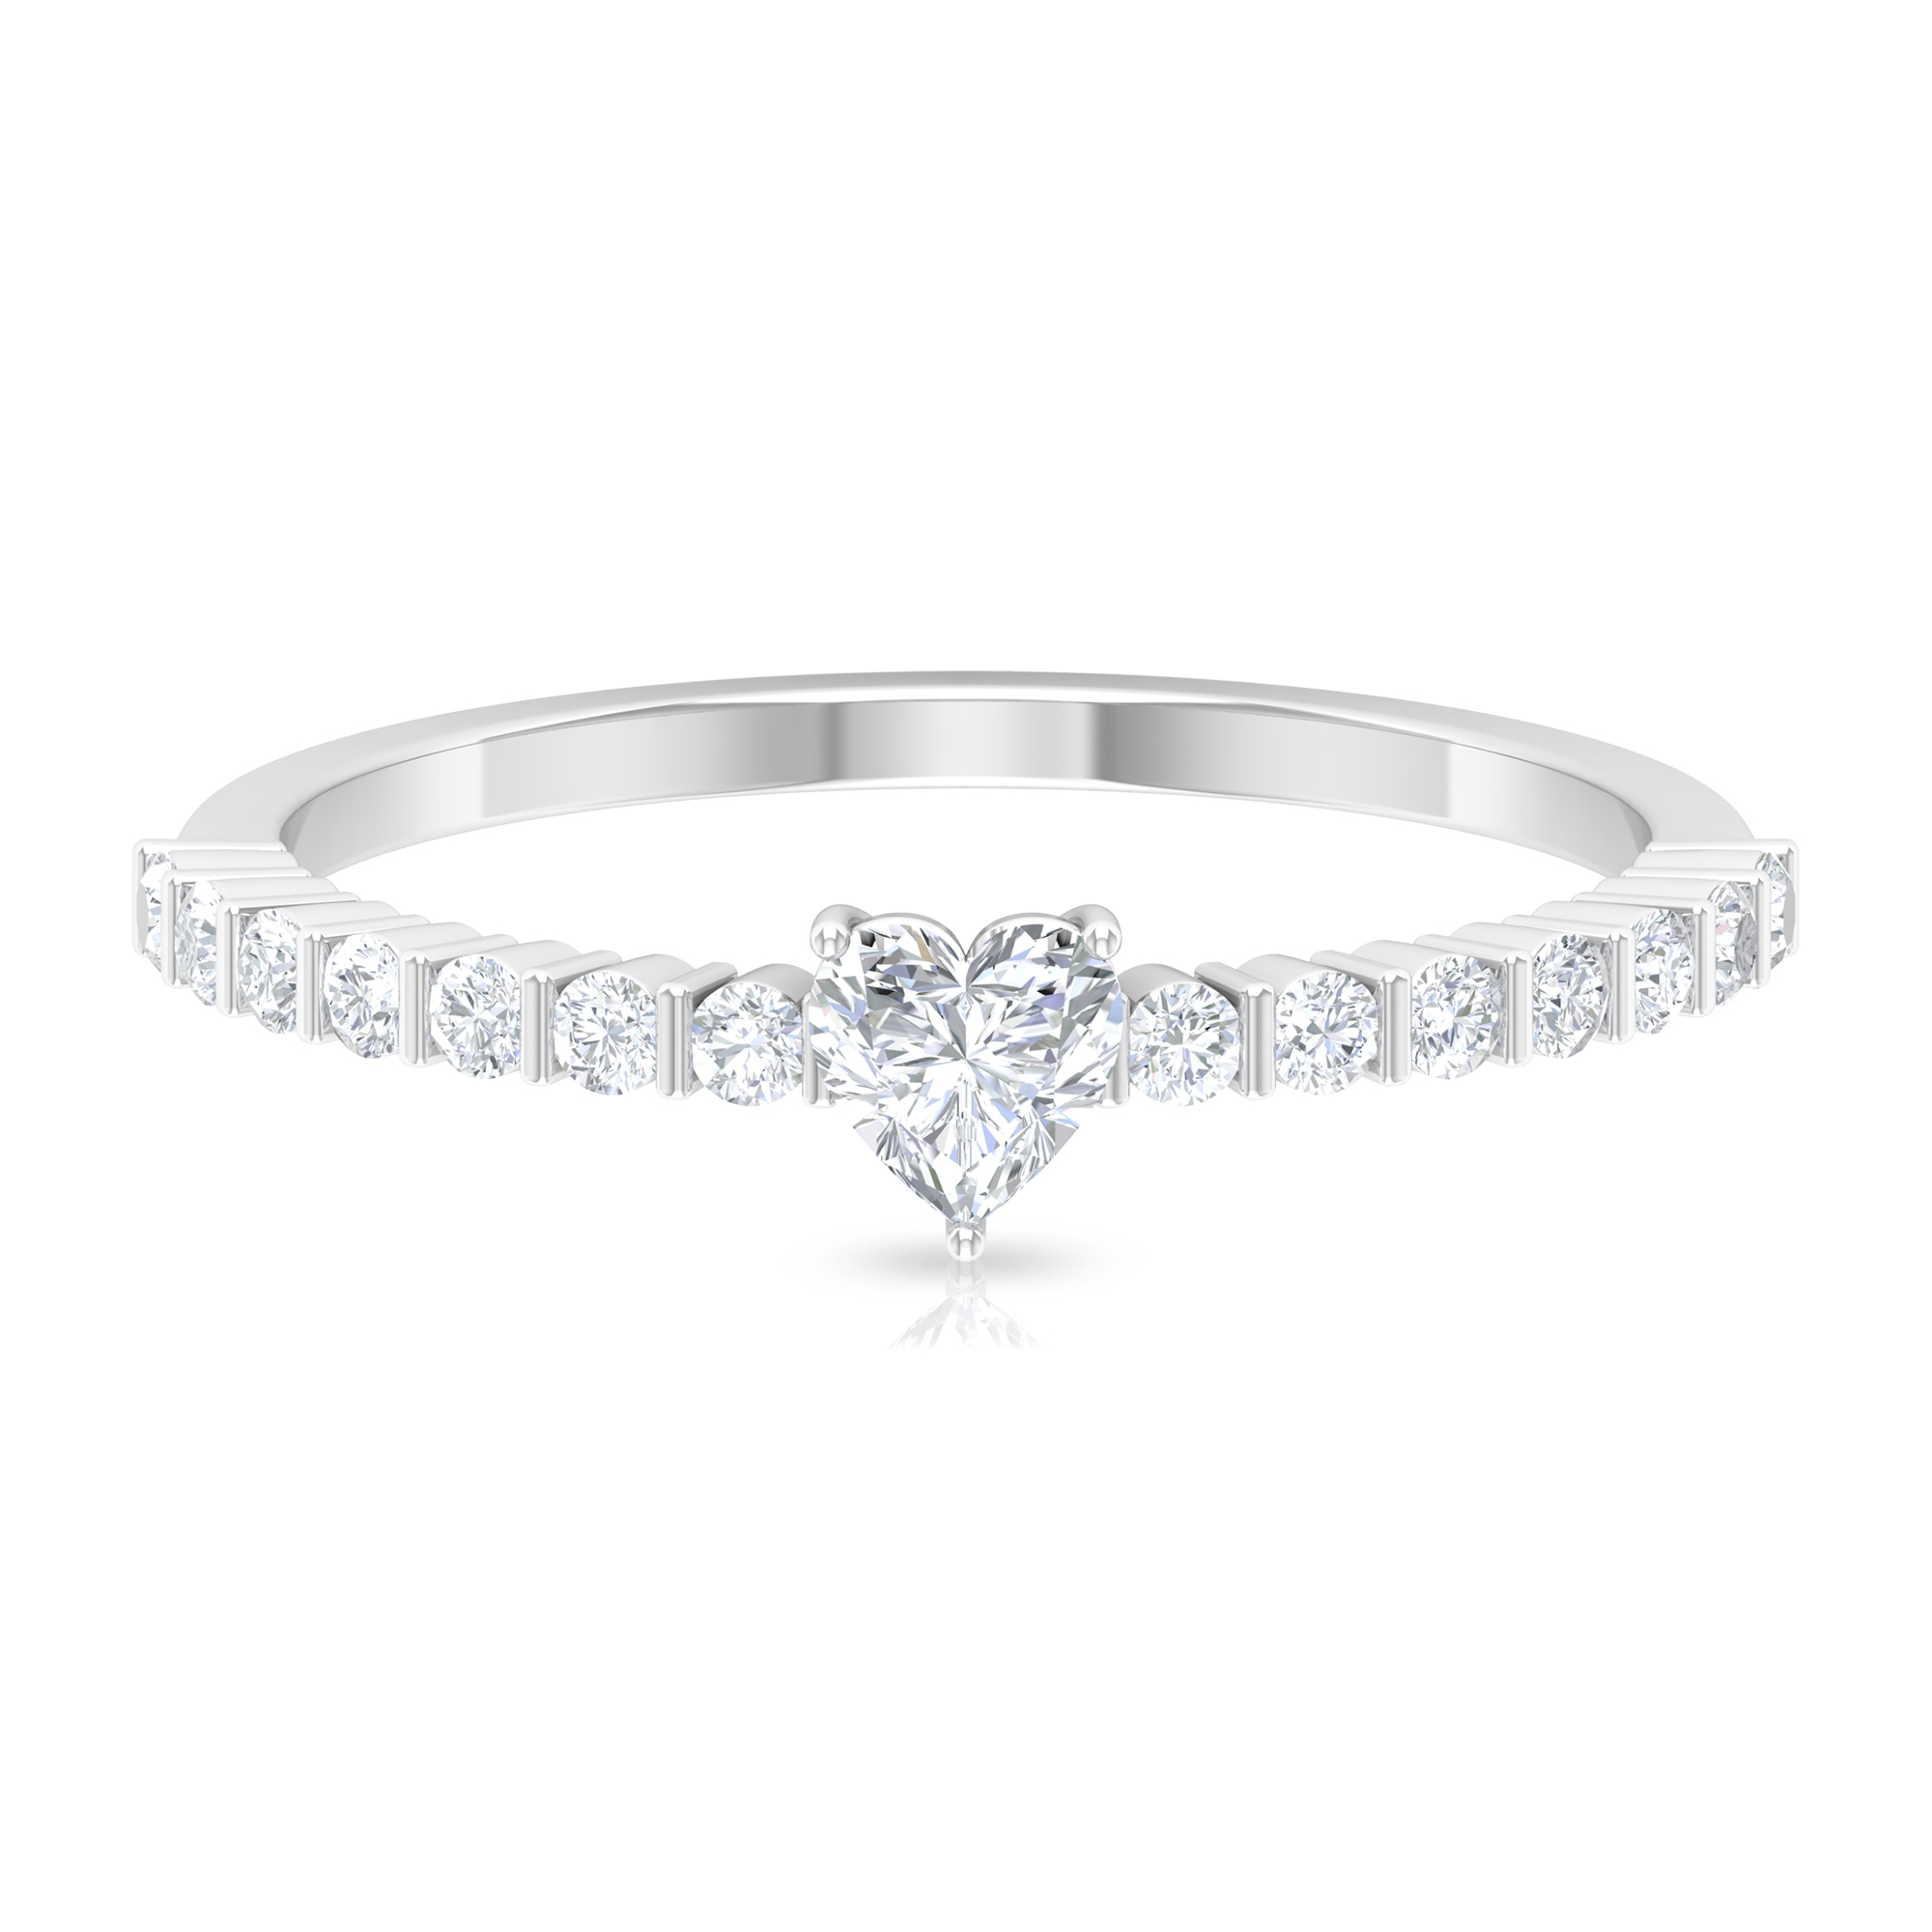 1/2 CT Heart Shape Solitaire Diamond Engagement Ring in 3 Prong Setting with Bar Set Side Stones